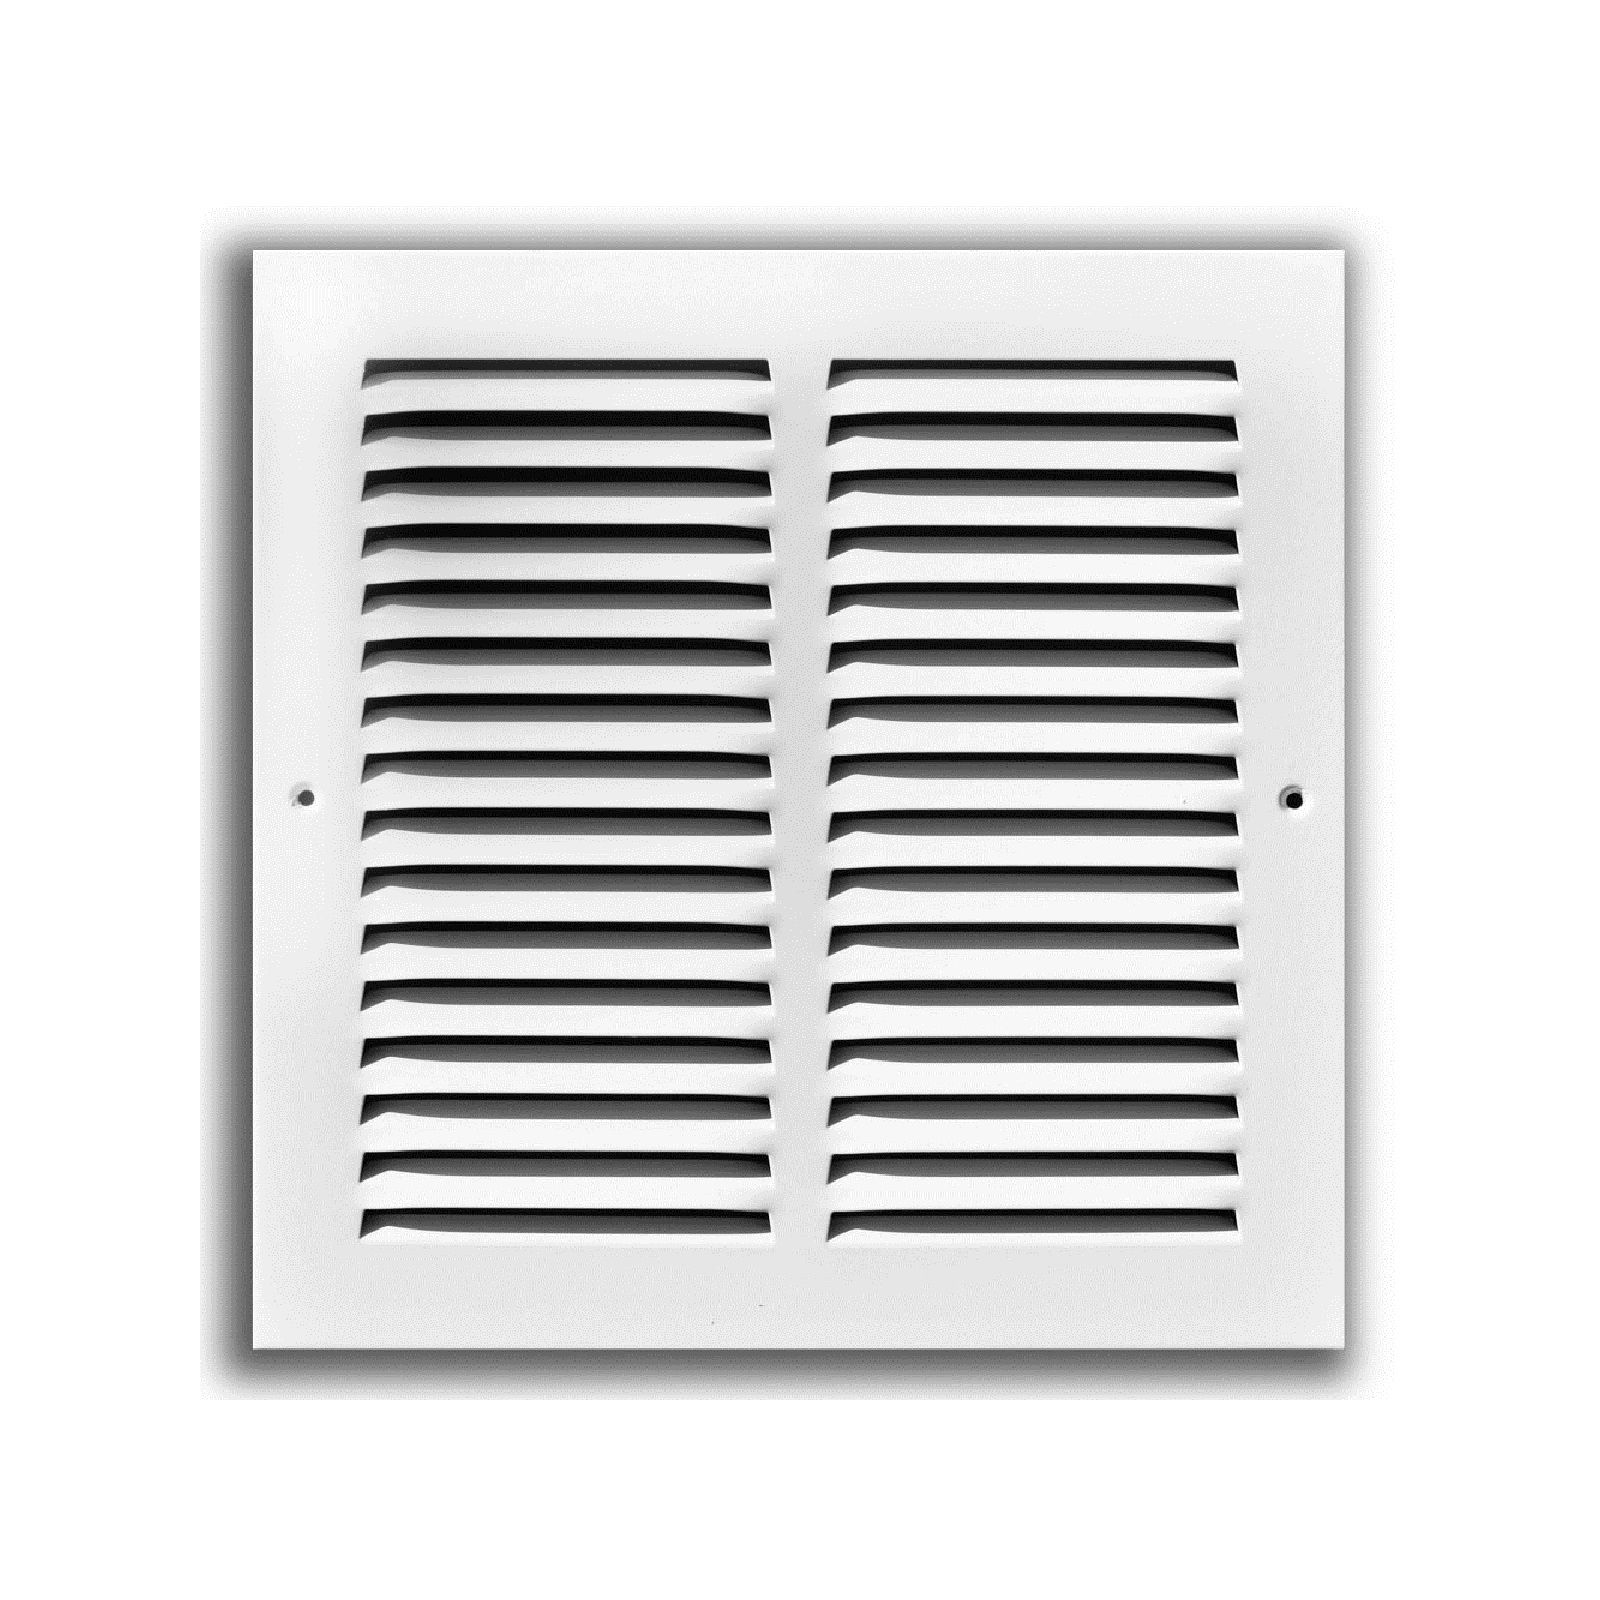 "TRUaire 170 10X10 - Steel Return Air Grille - 1/2"" Spaced Fin, White, 10"" X 10"""